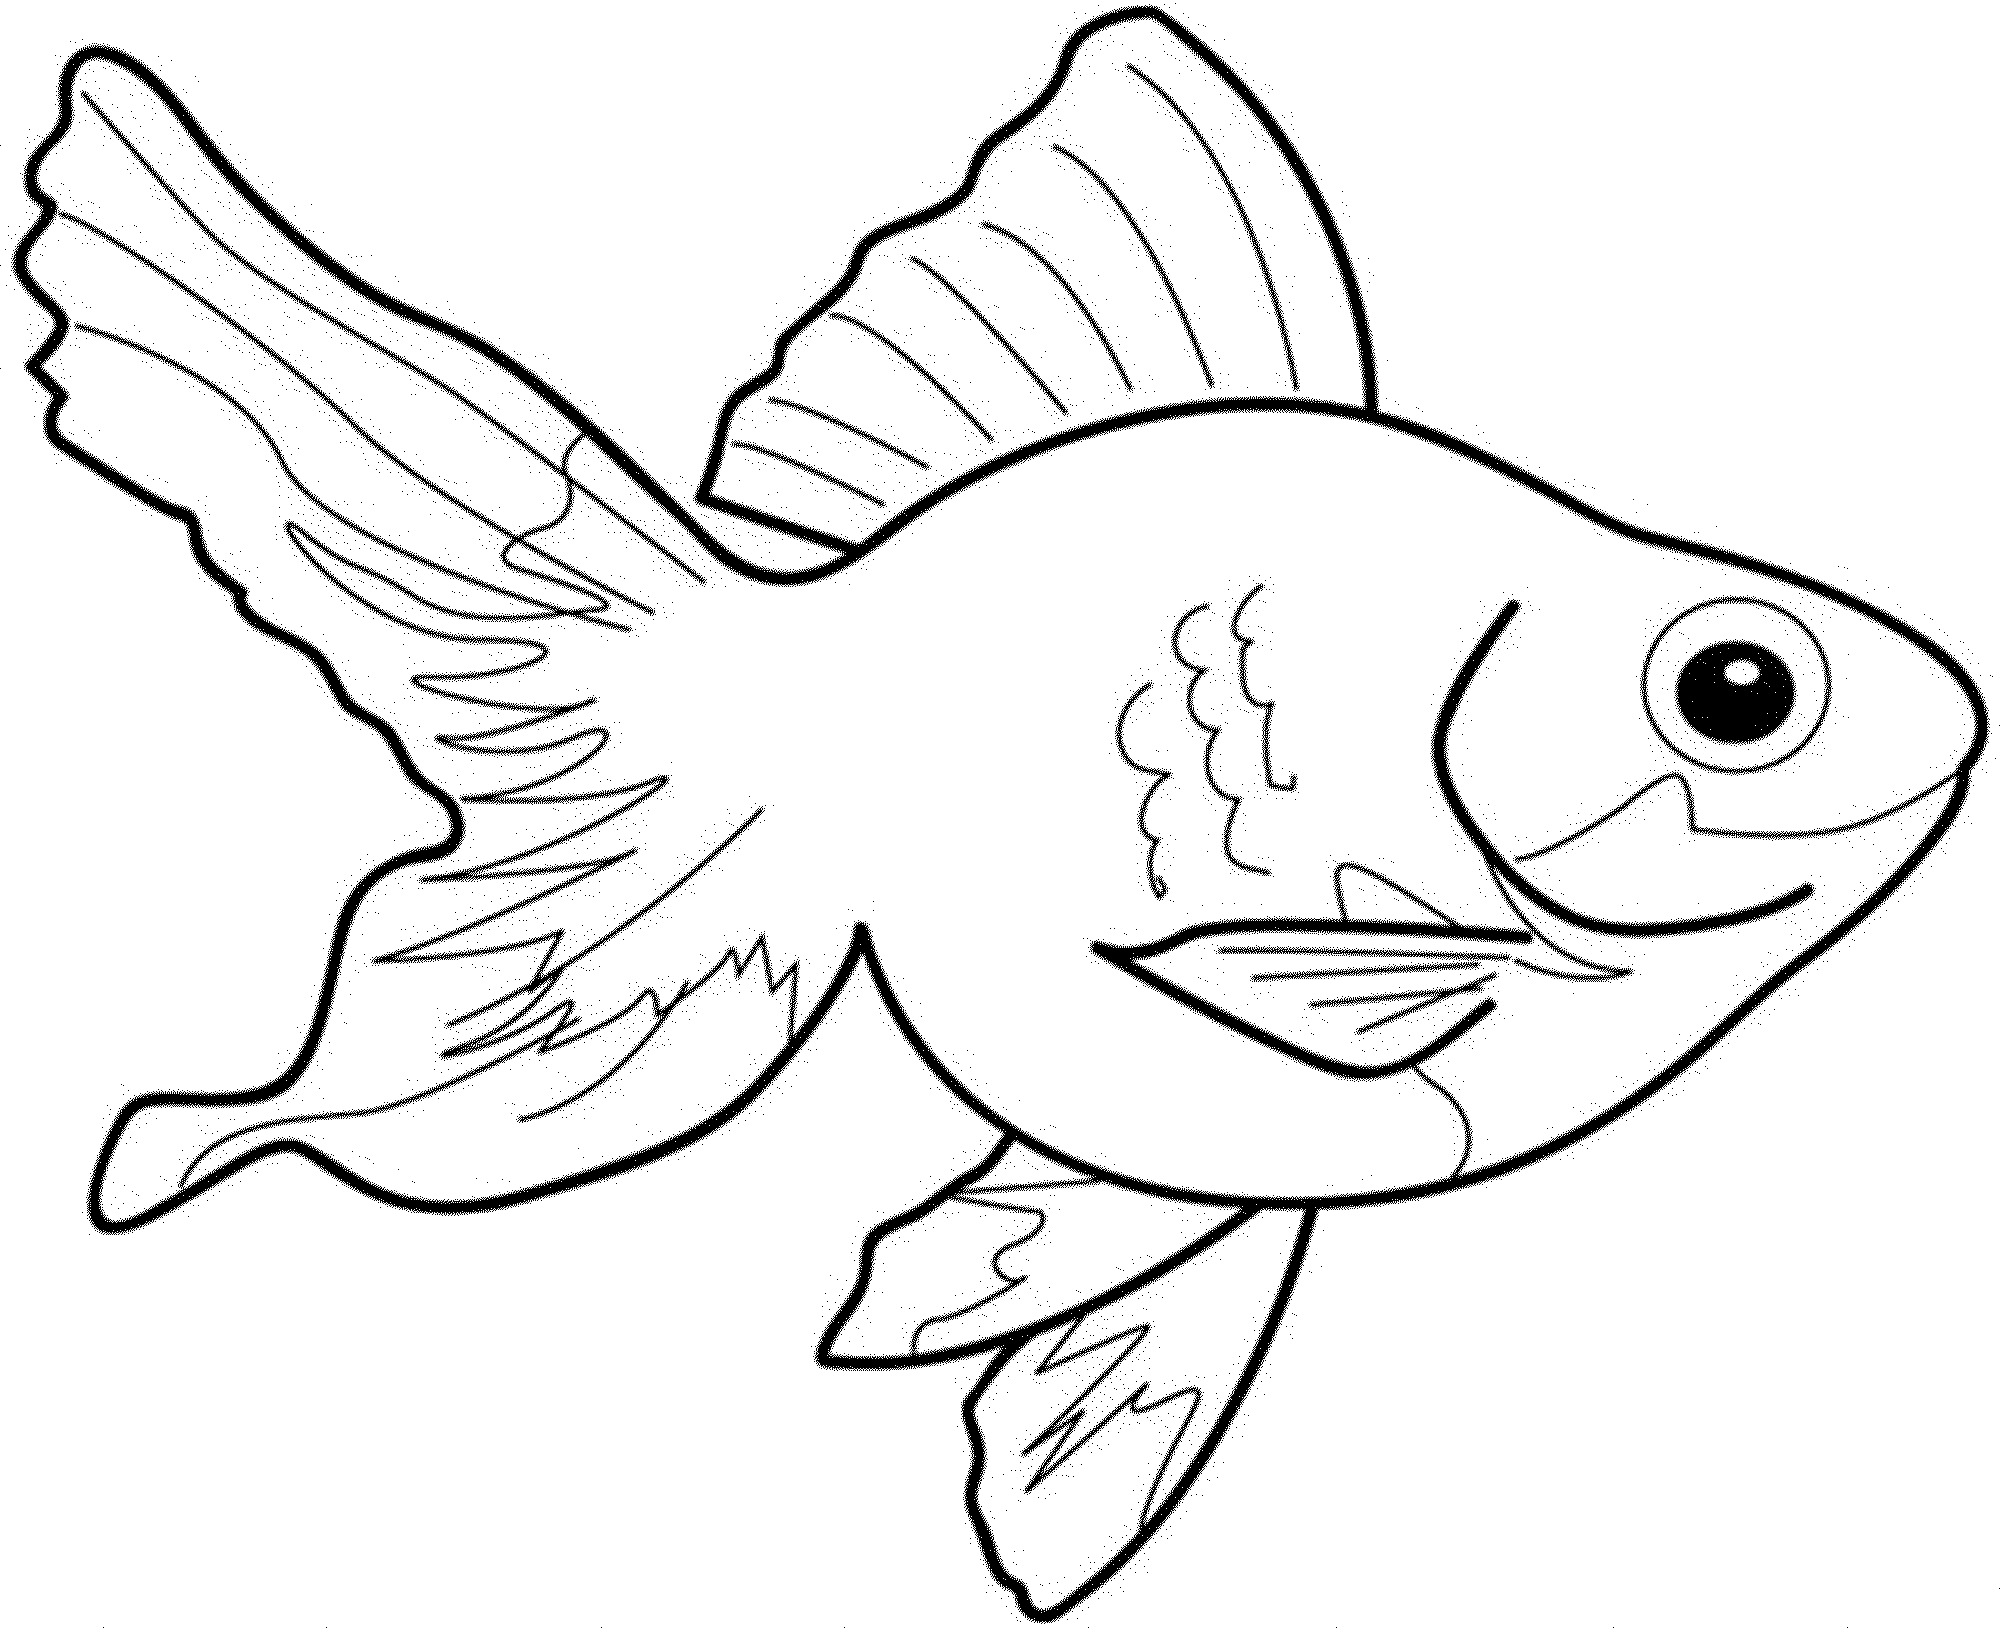 fish picture to color print download cute and educative fish coloring pages fish to picture color